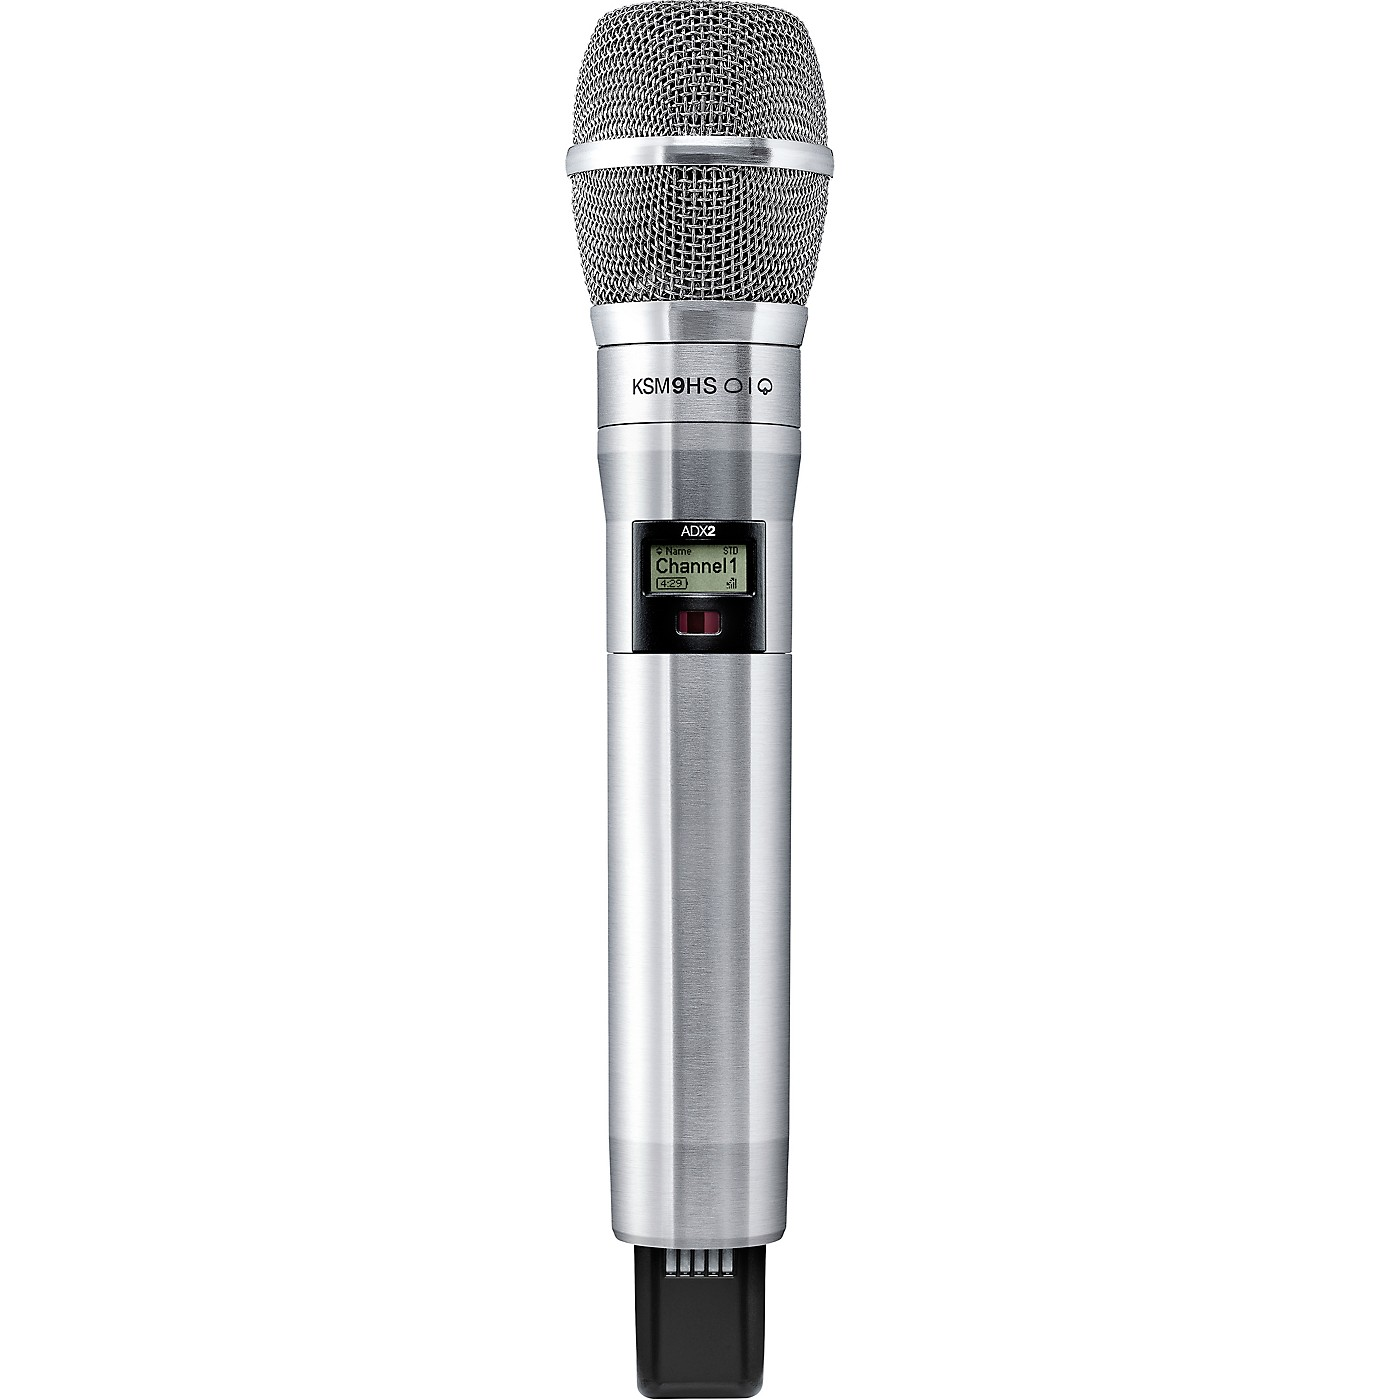 Shure Axient Digital ADX2/K9HSN Wireless Handheld Microphone Transmitter with KSM9HS Capsule in Nickel thumbnail